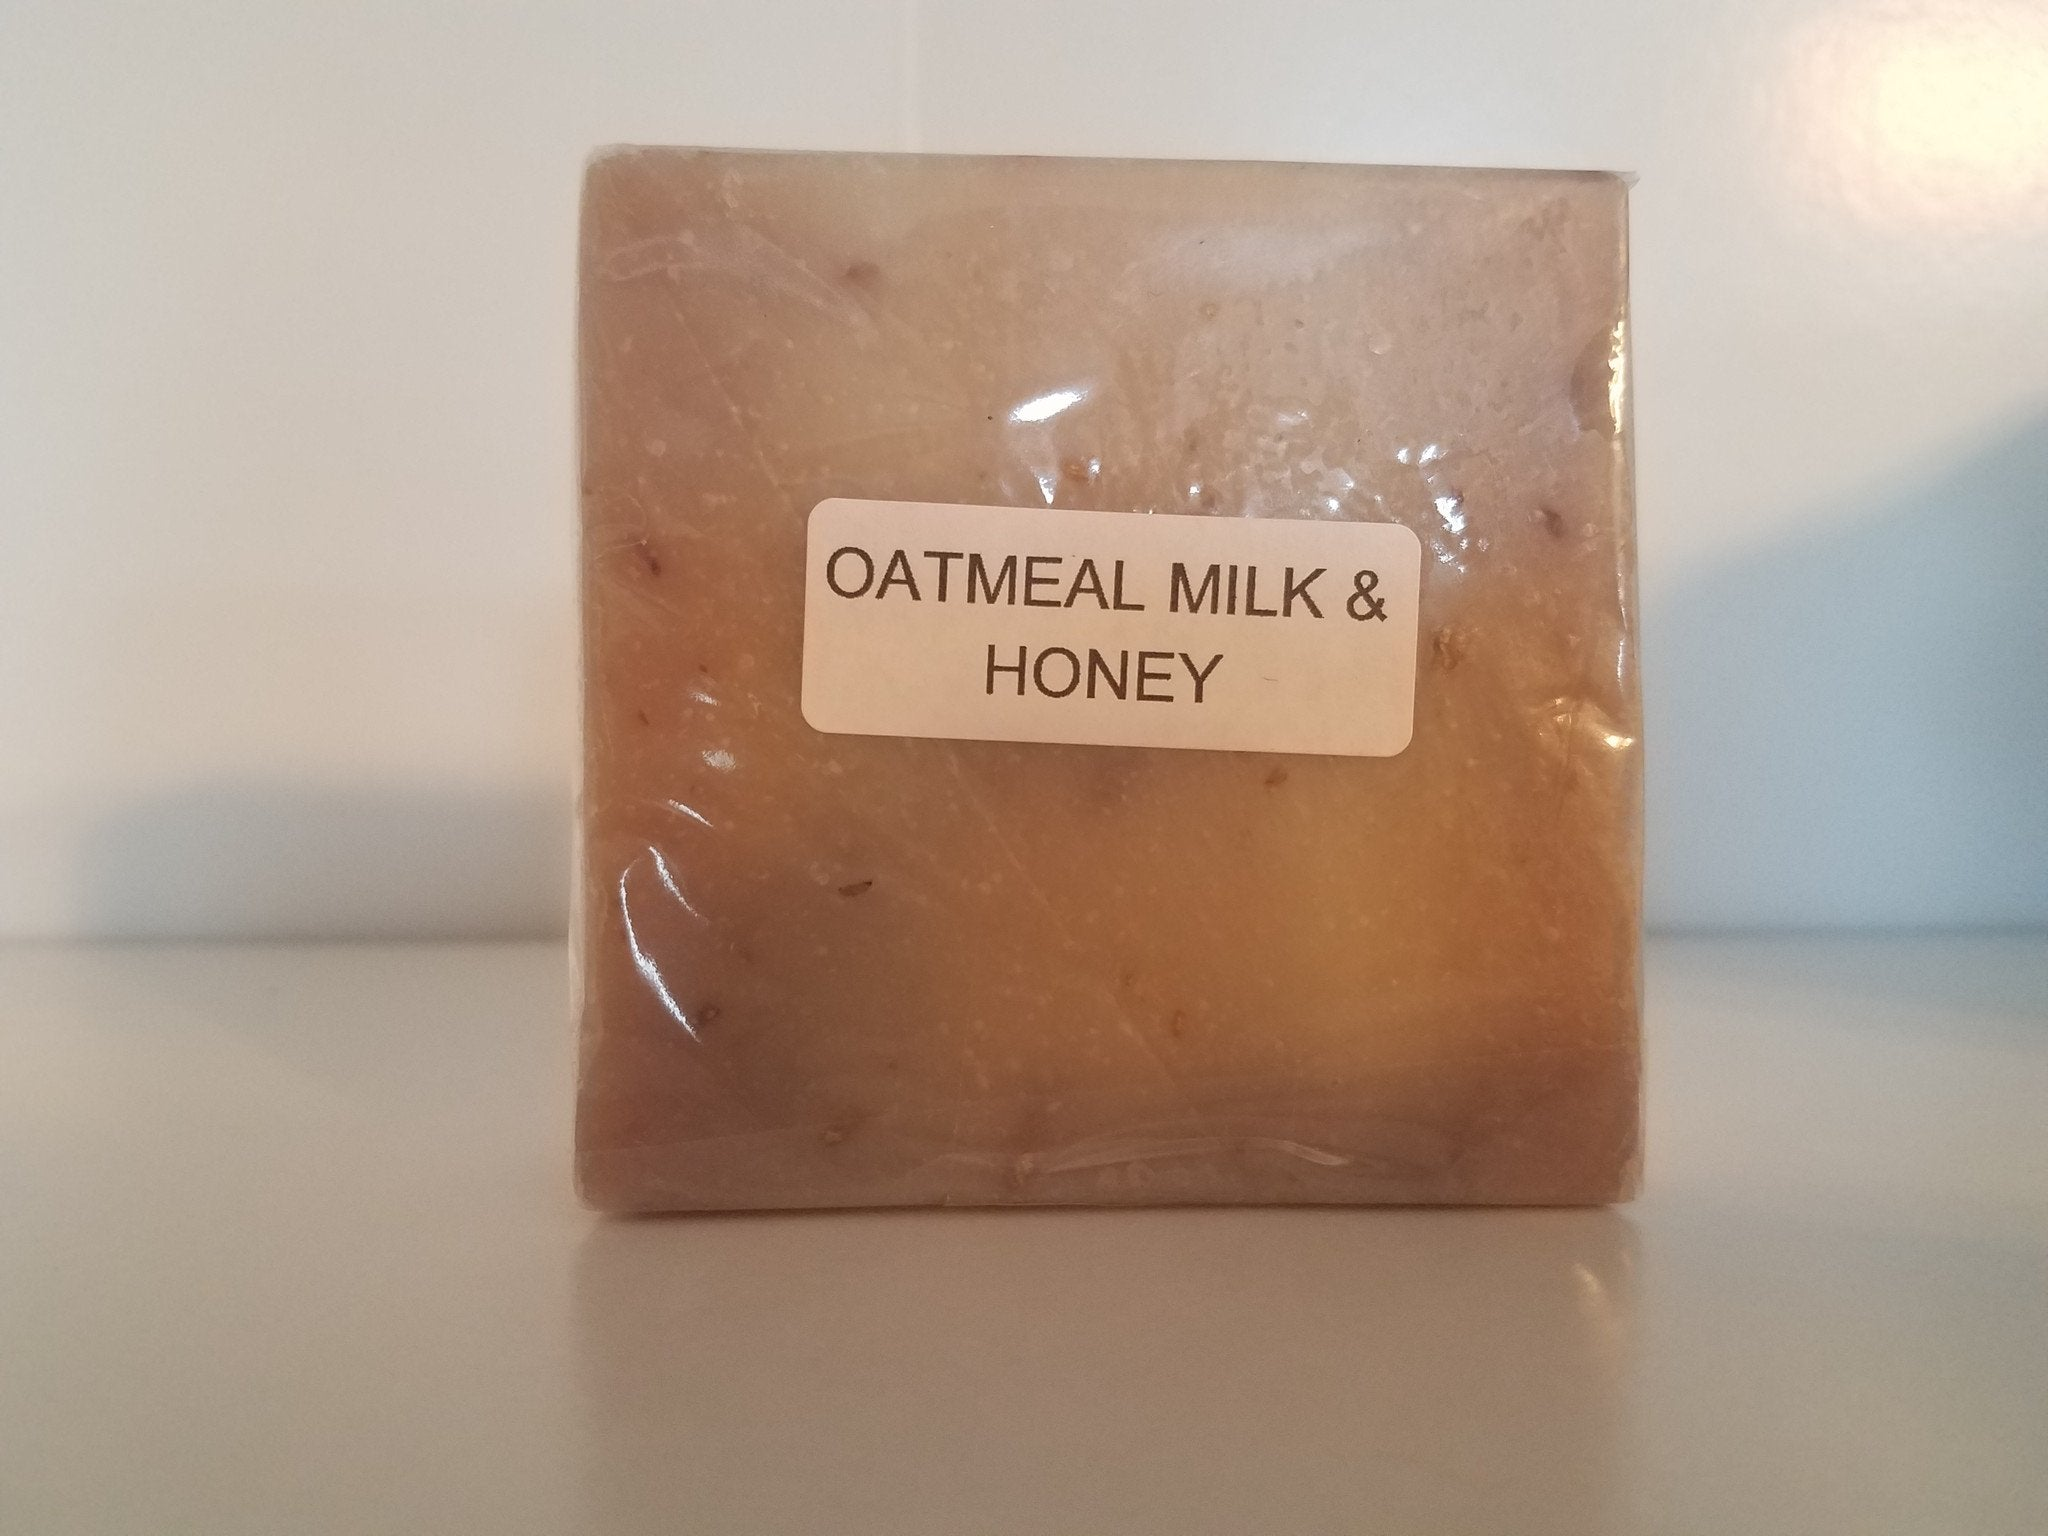 Oatmeal Milk and Honey 5oz Bar Soap - My Home and Pet